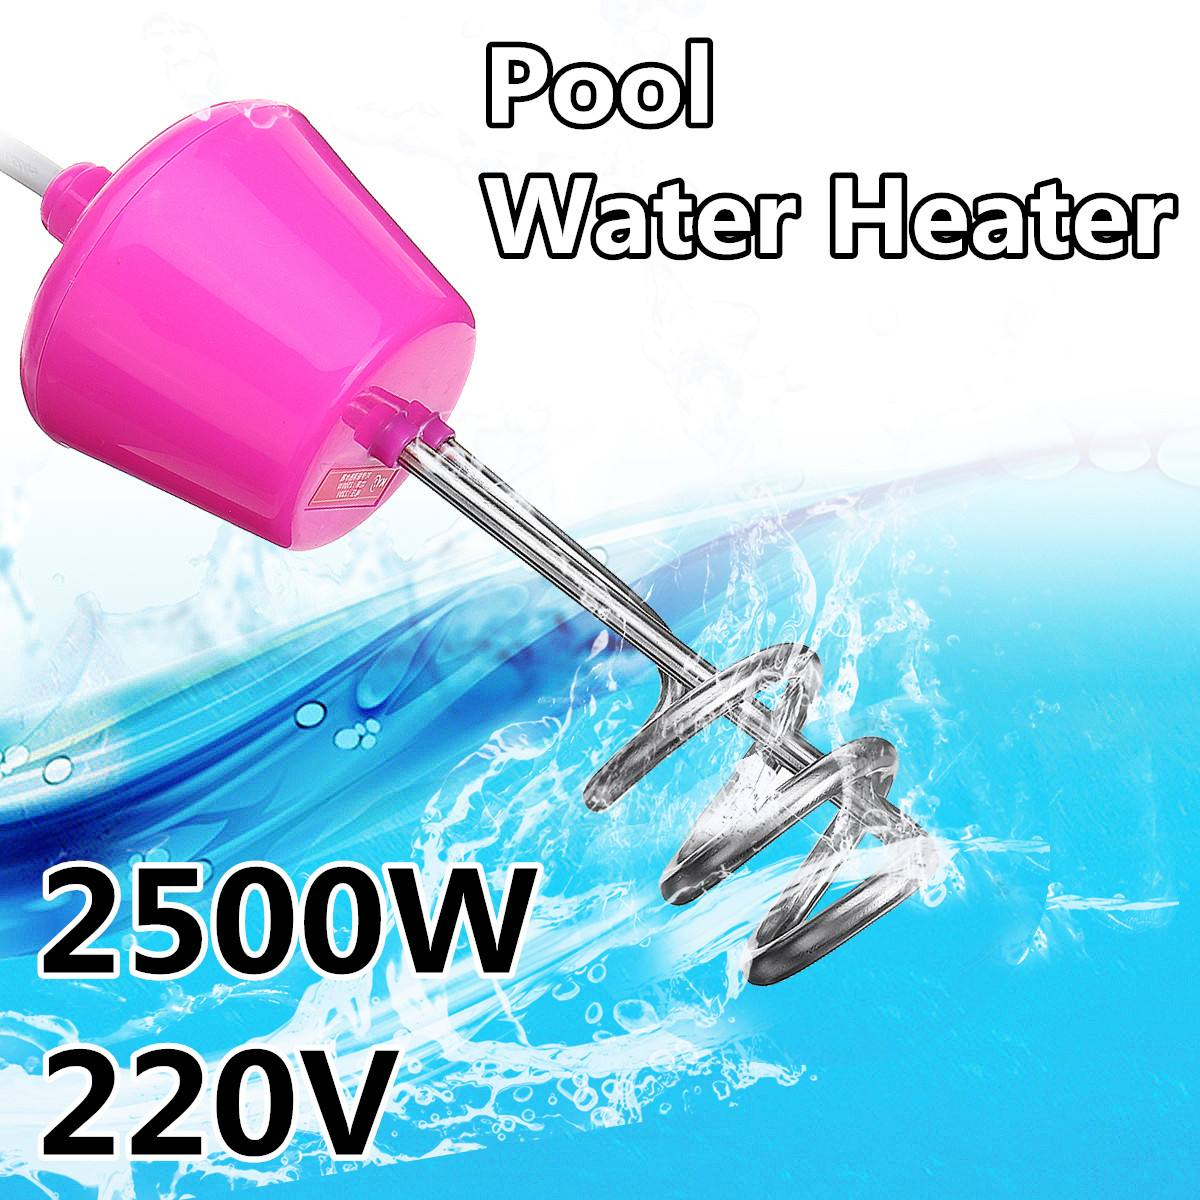 2500W Bathroom Swimming Pool Floating Electric Heater Boiler Water Heating Element Portable Immersion Suspension UK Plug